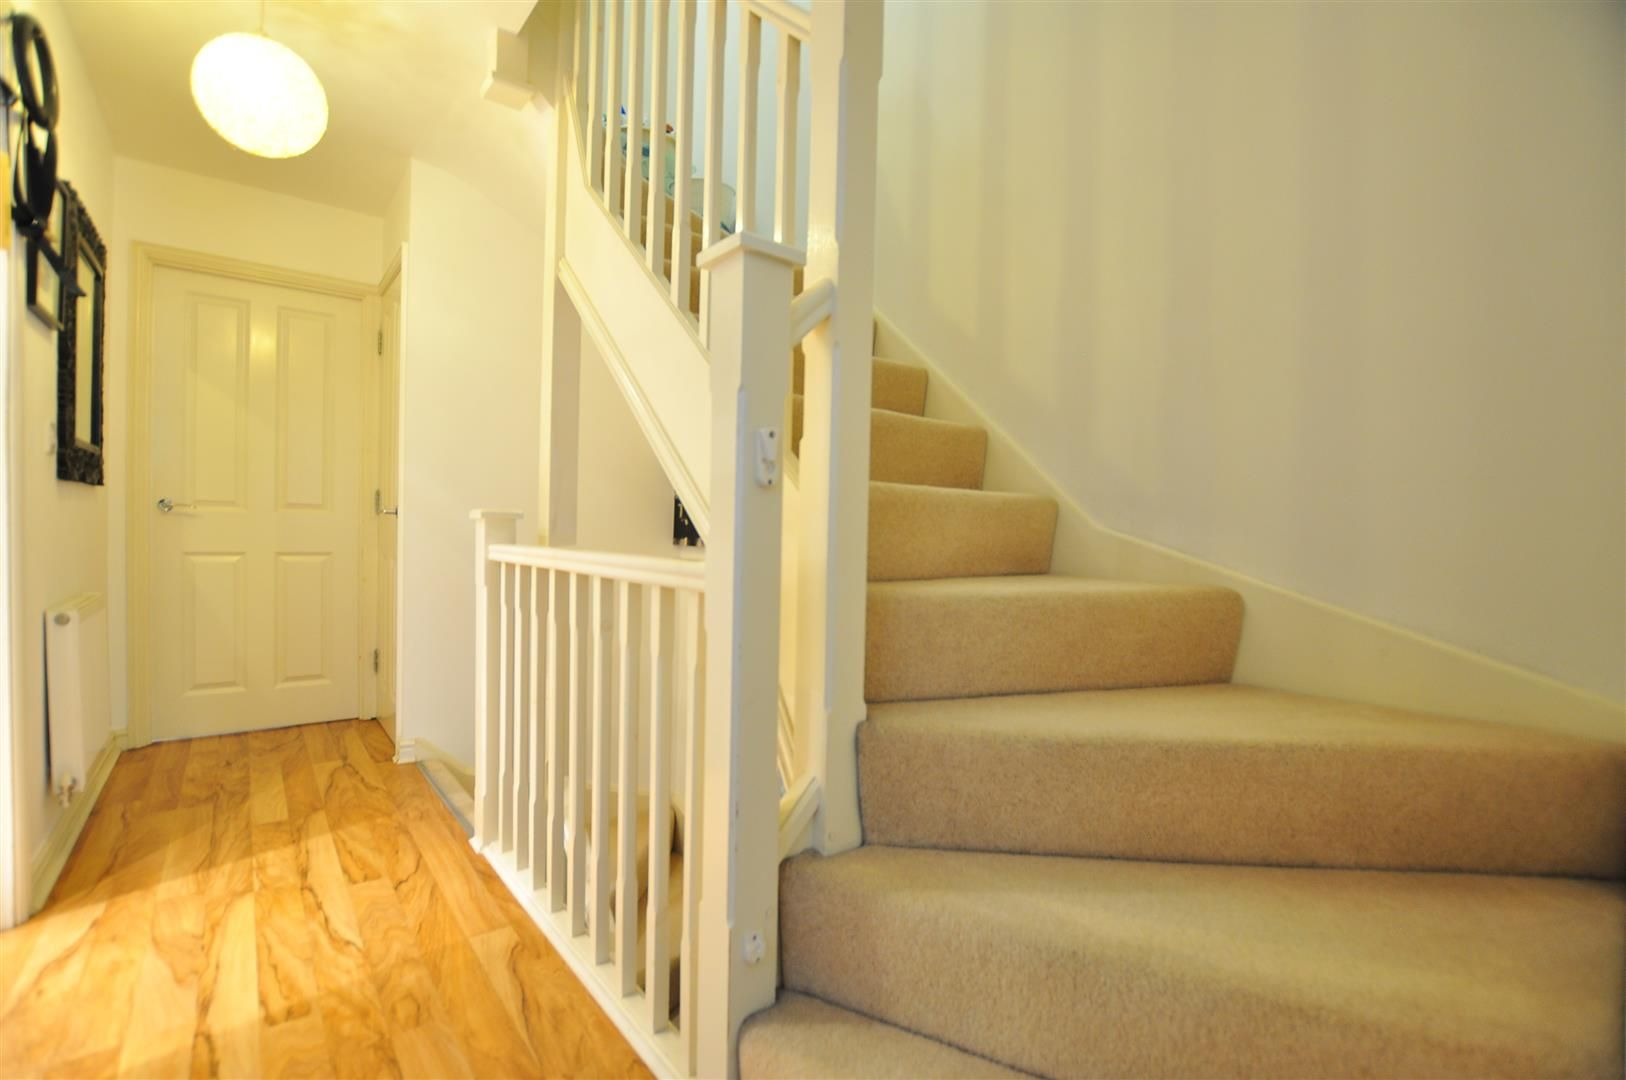 4 bed end-of-terrace for sale  - Property Image 13